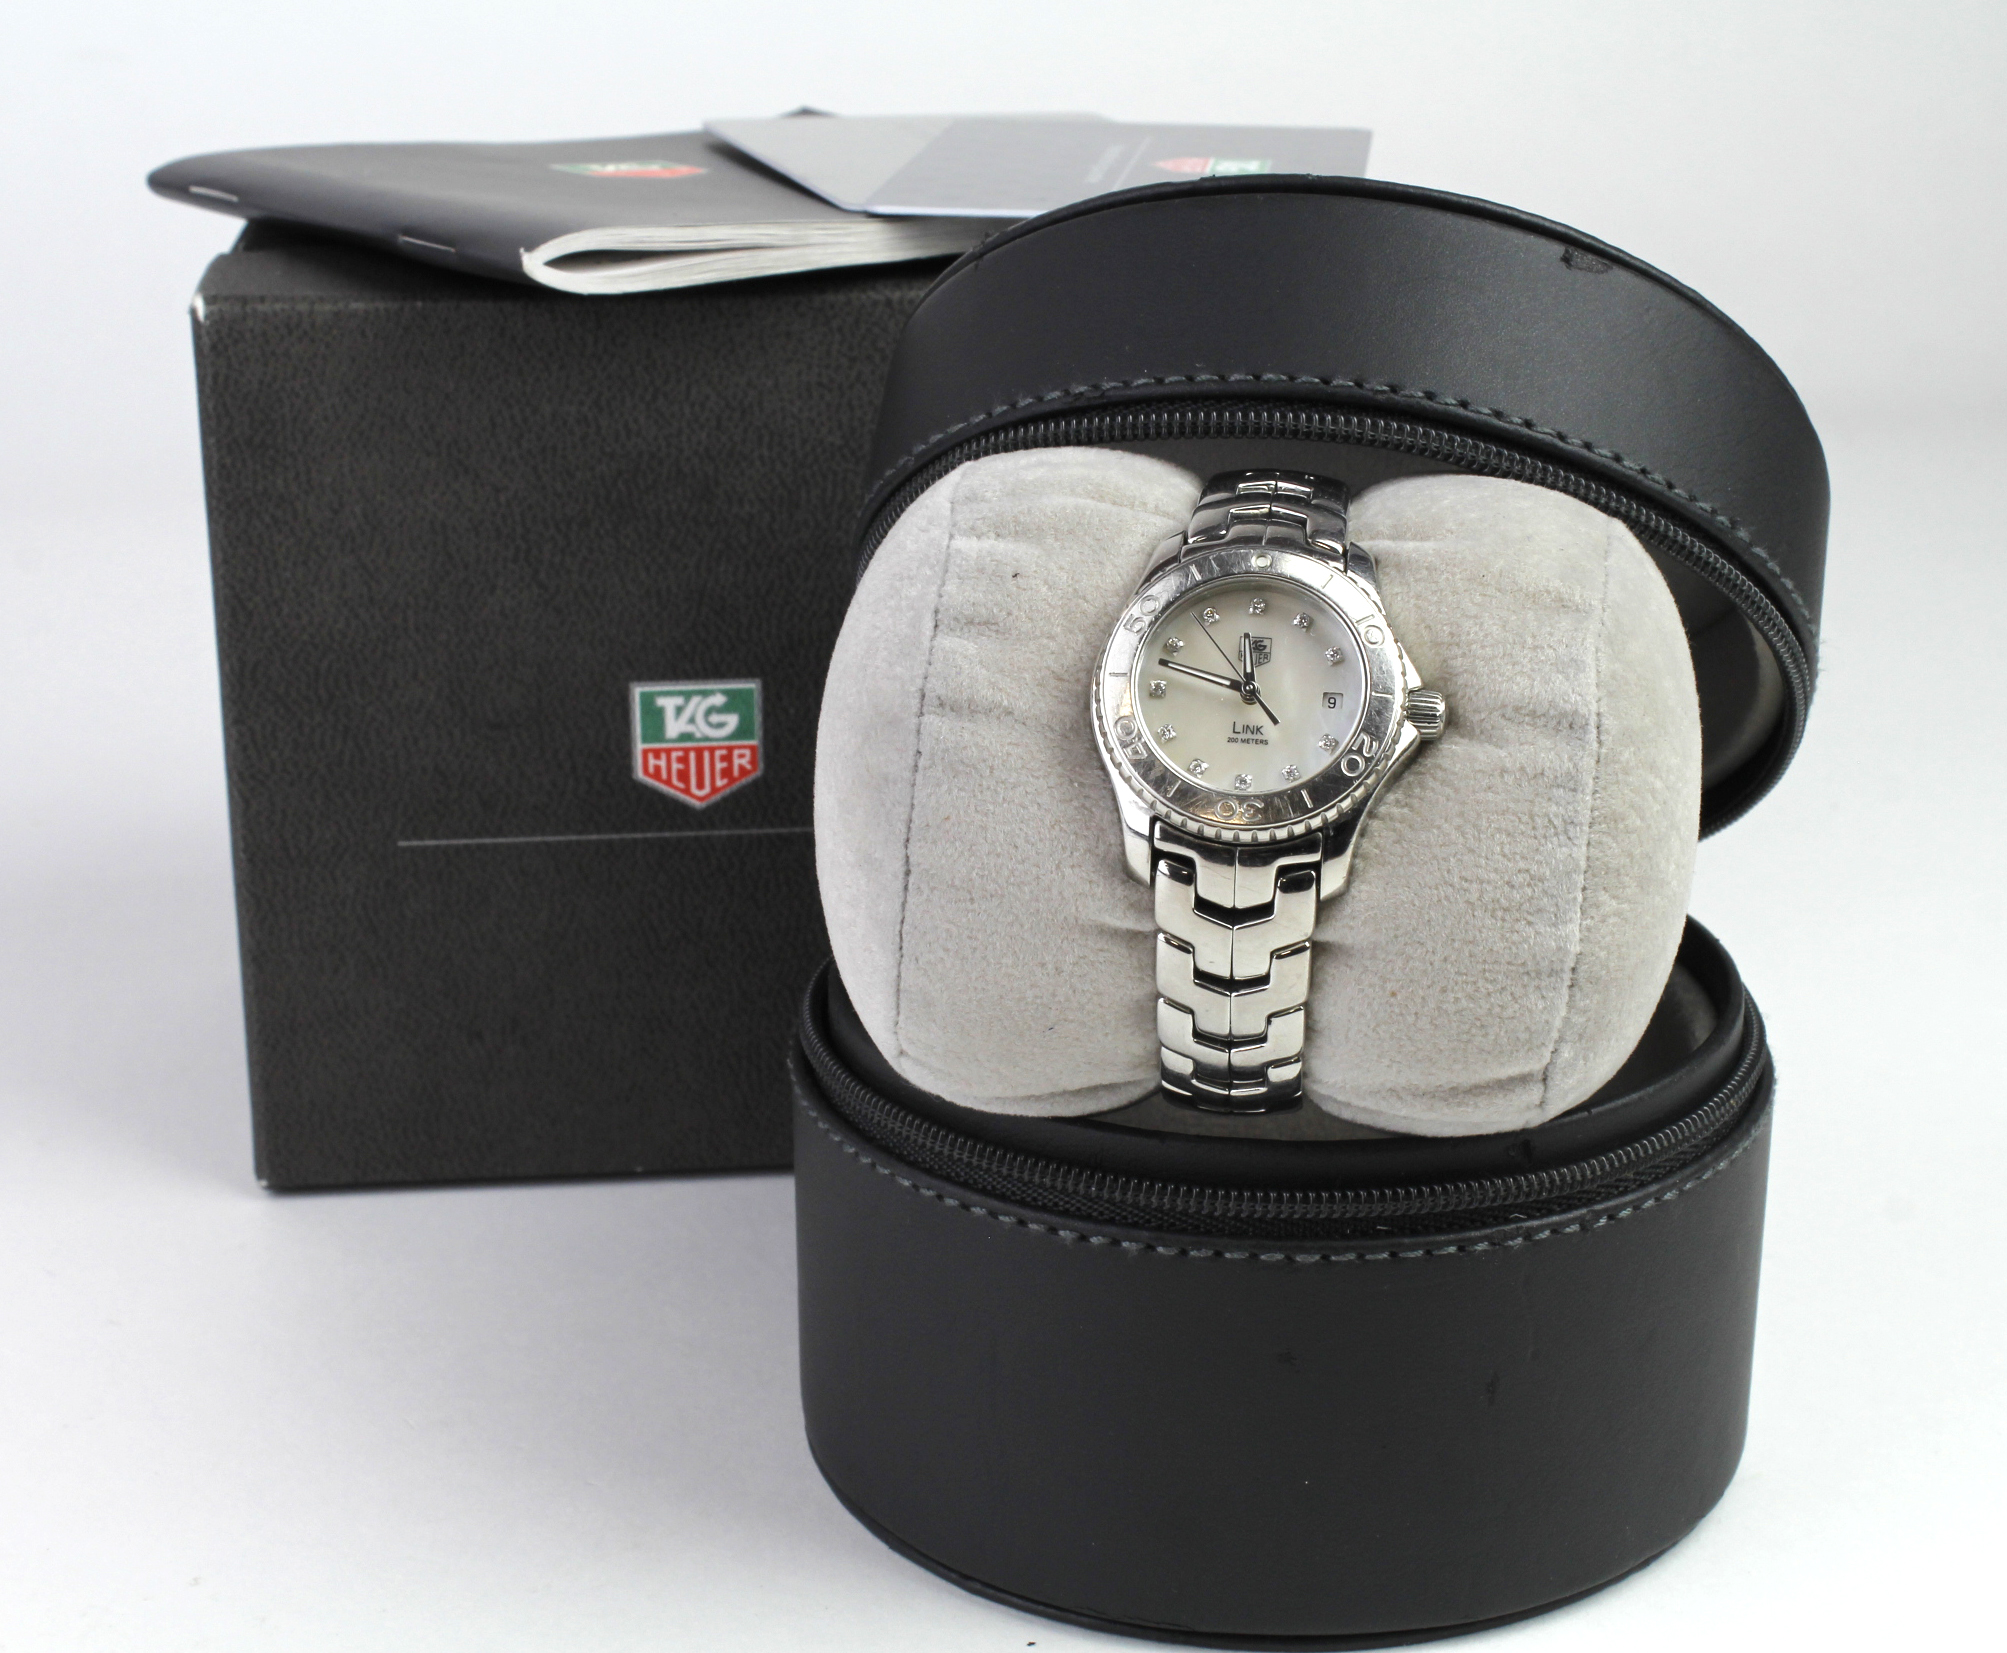 Ladies stainless steel Tag Heuer link bracelet watch, having signed mother of pearl dial with